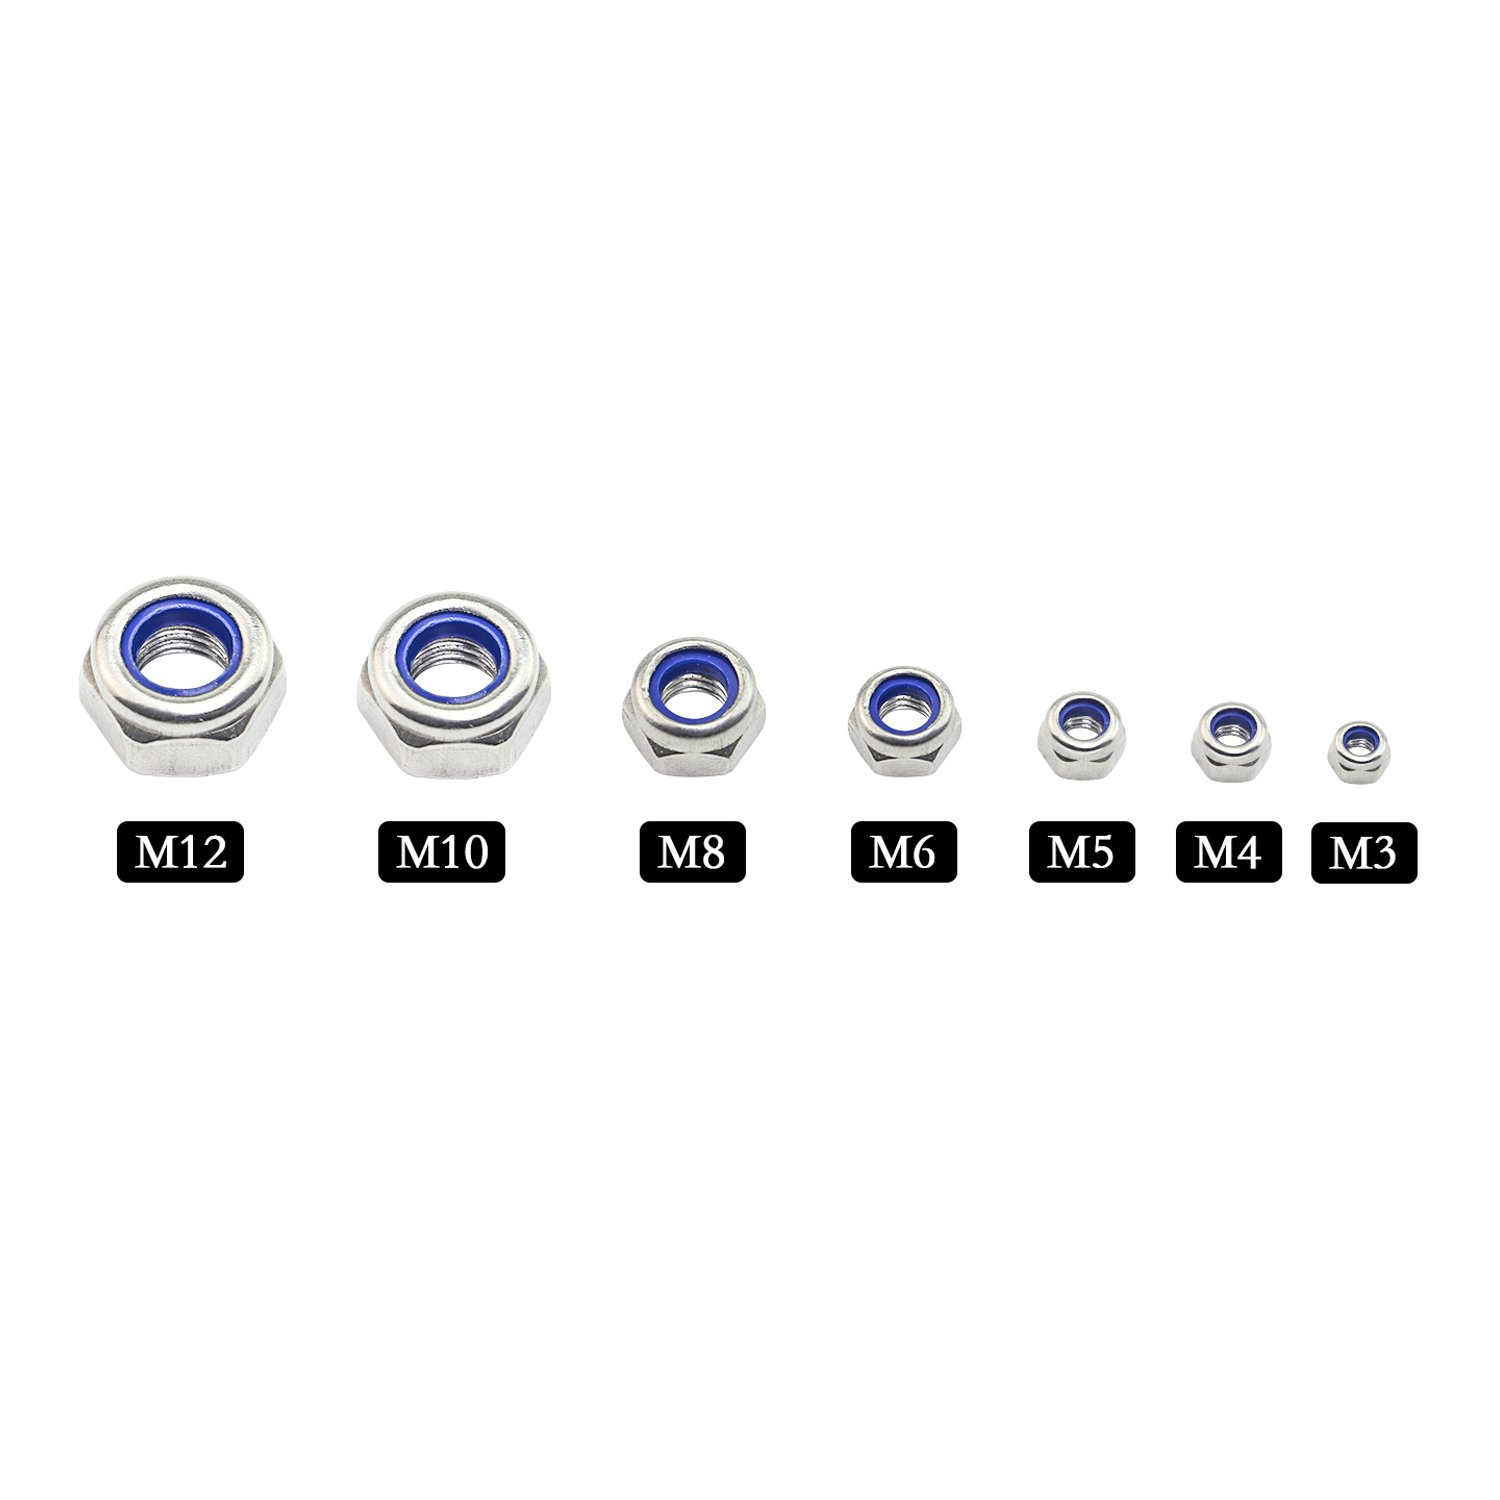 Assortment Kit 198 pcs SBest 198Pcs 304 Stainless Steel Metric Lock Nut Assortment Kit Perfect for lock Washers Nylon Insert Locknut M3 M4 M5 M6 M8 M10 M12